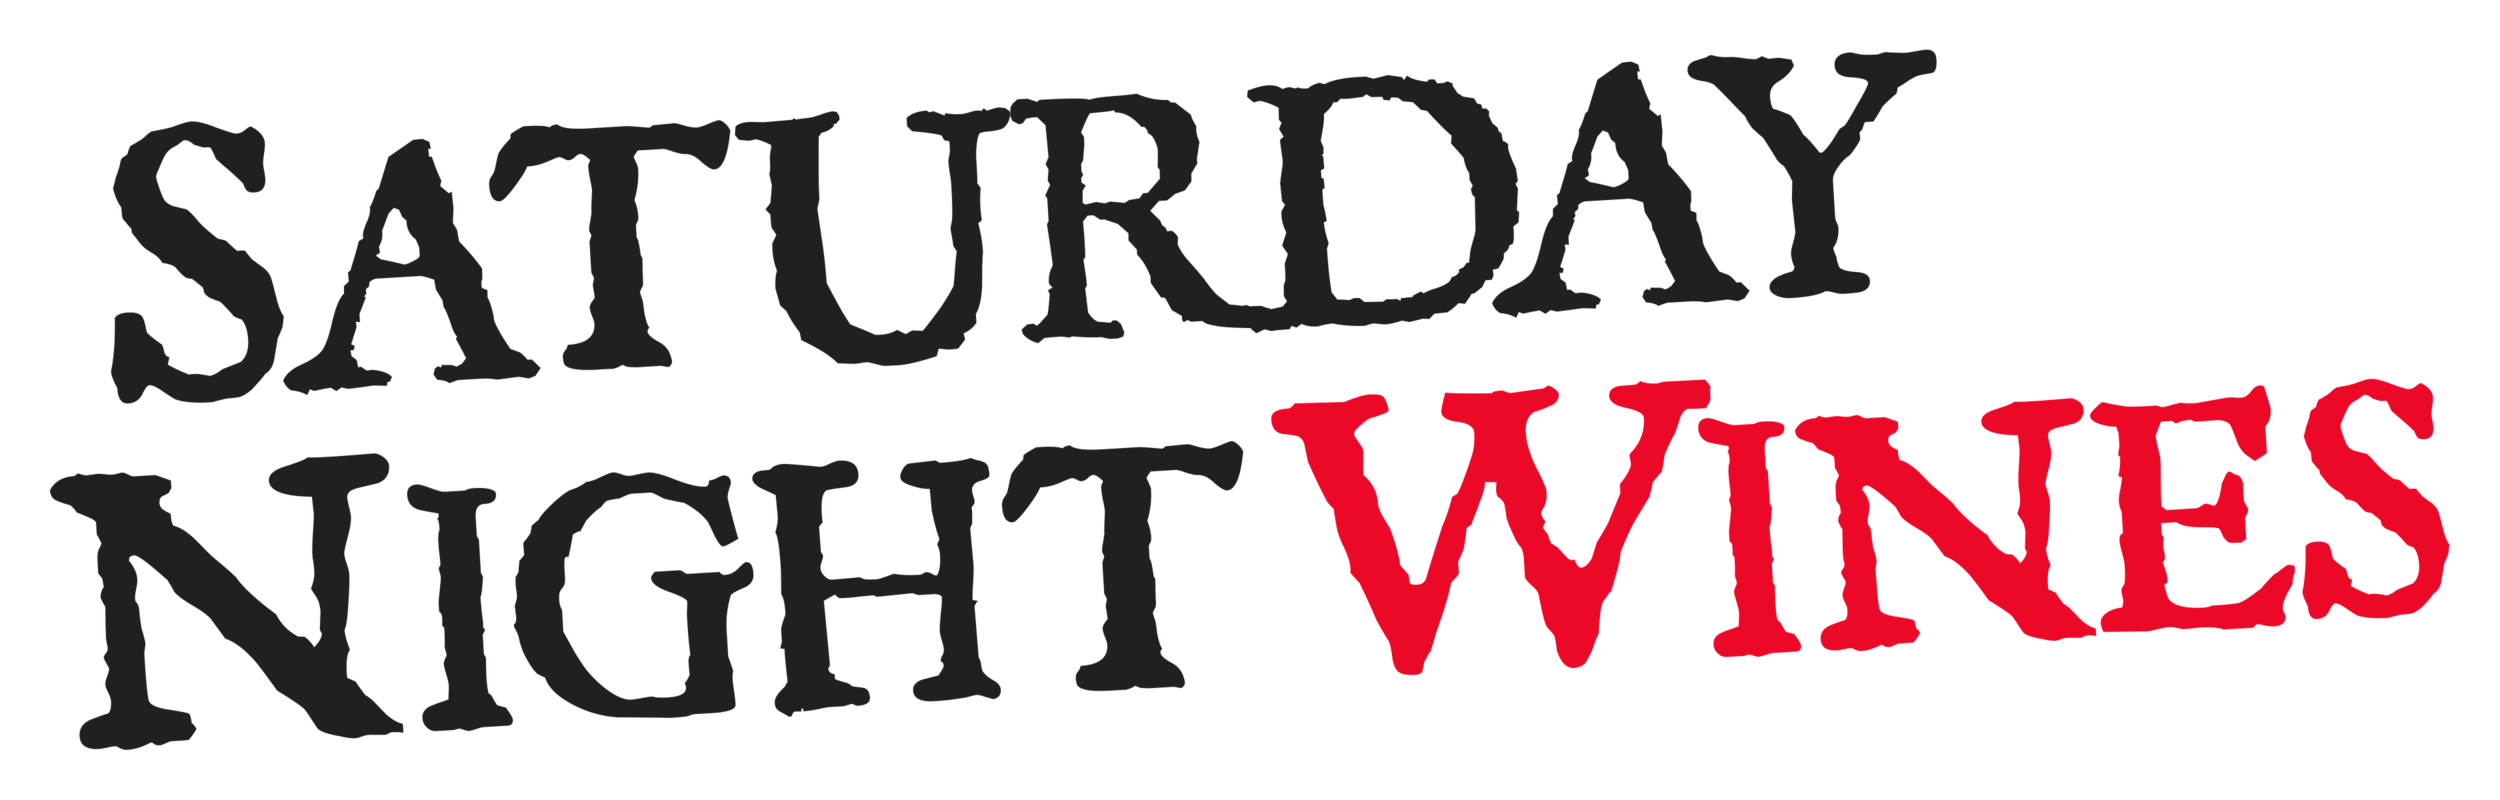 SaturdayNIghtWines_Logo_SNW0039_1117.png